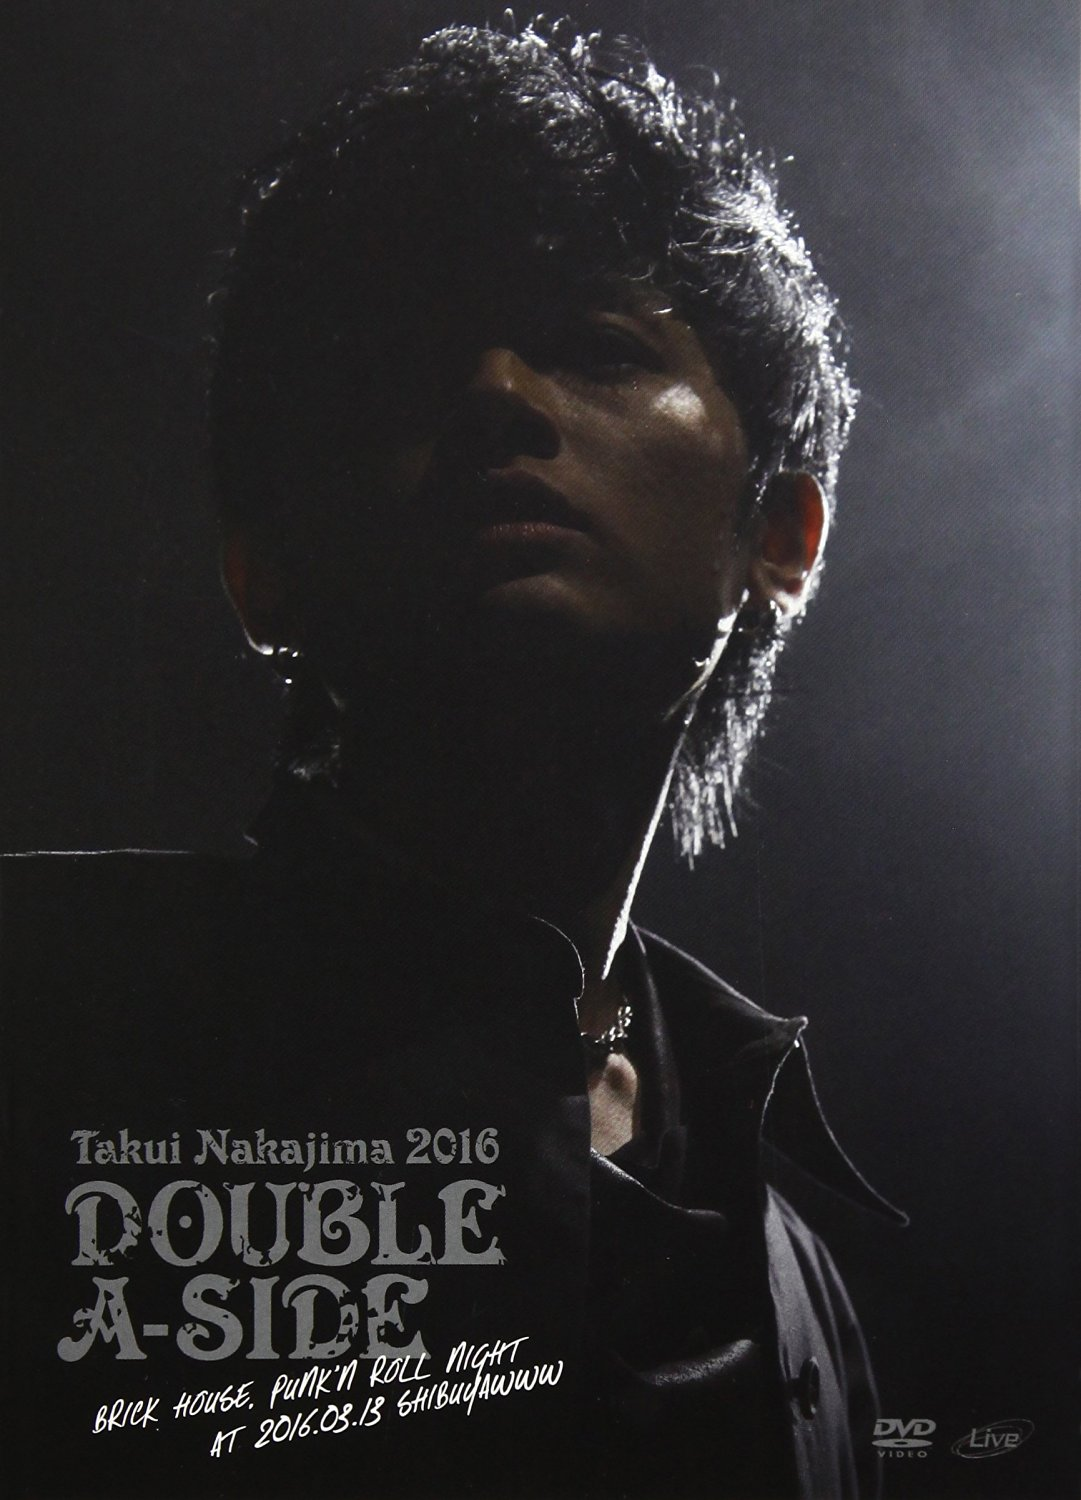 ナカジマタクイ の DVD TAKUI NAKAJIMA 2016 「DOUBLE A-SIDE」 BRICK HOUSE,PUNK'N ROLL NIGHT at 2016.03.13 ShibuyaWWW